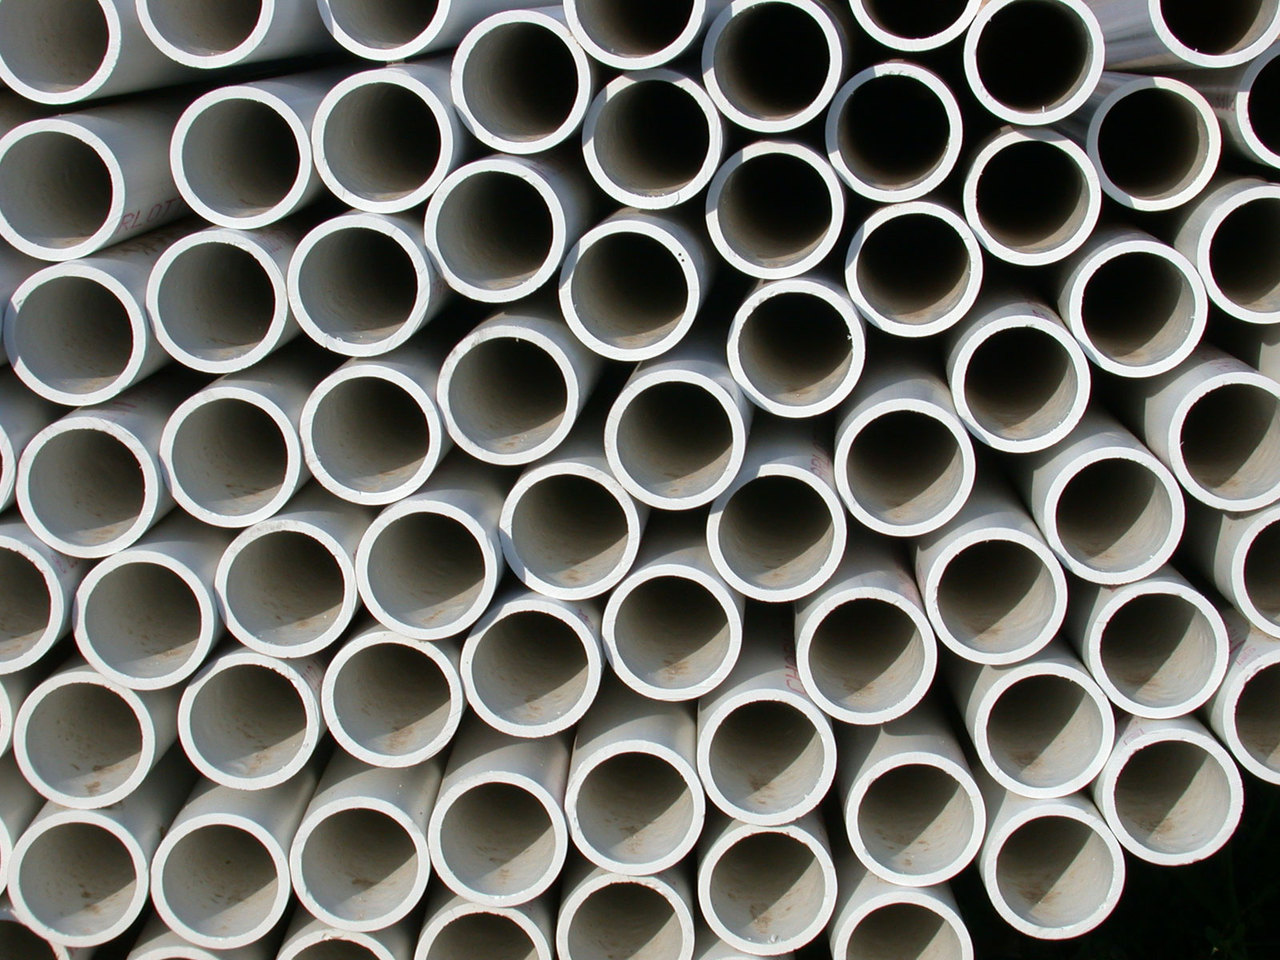 PVC pipe, ductile iron pipe, life cycle cost analysis, university of Michigan